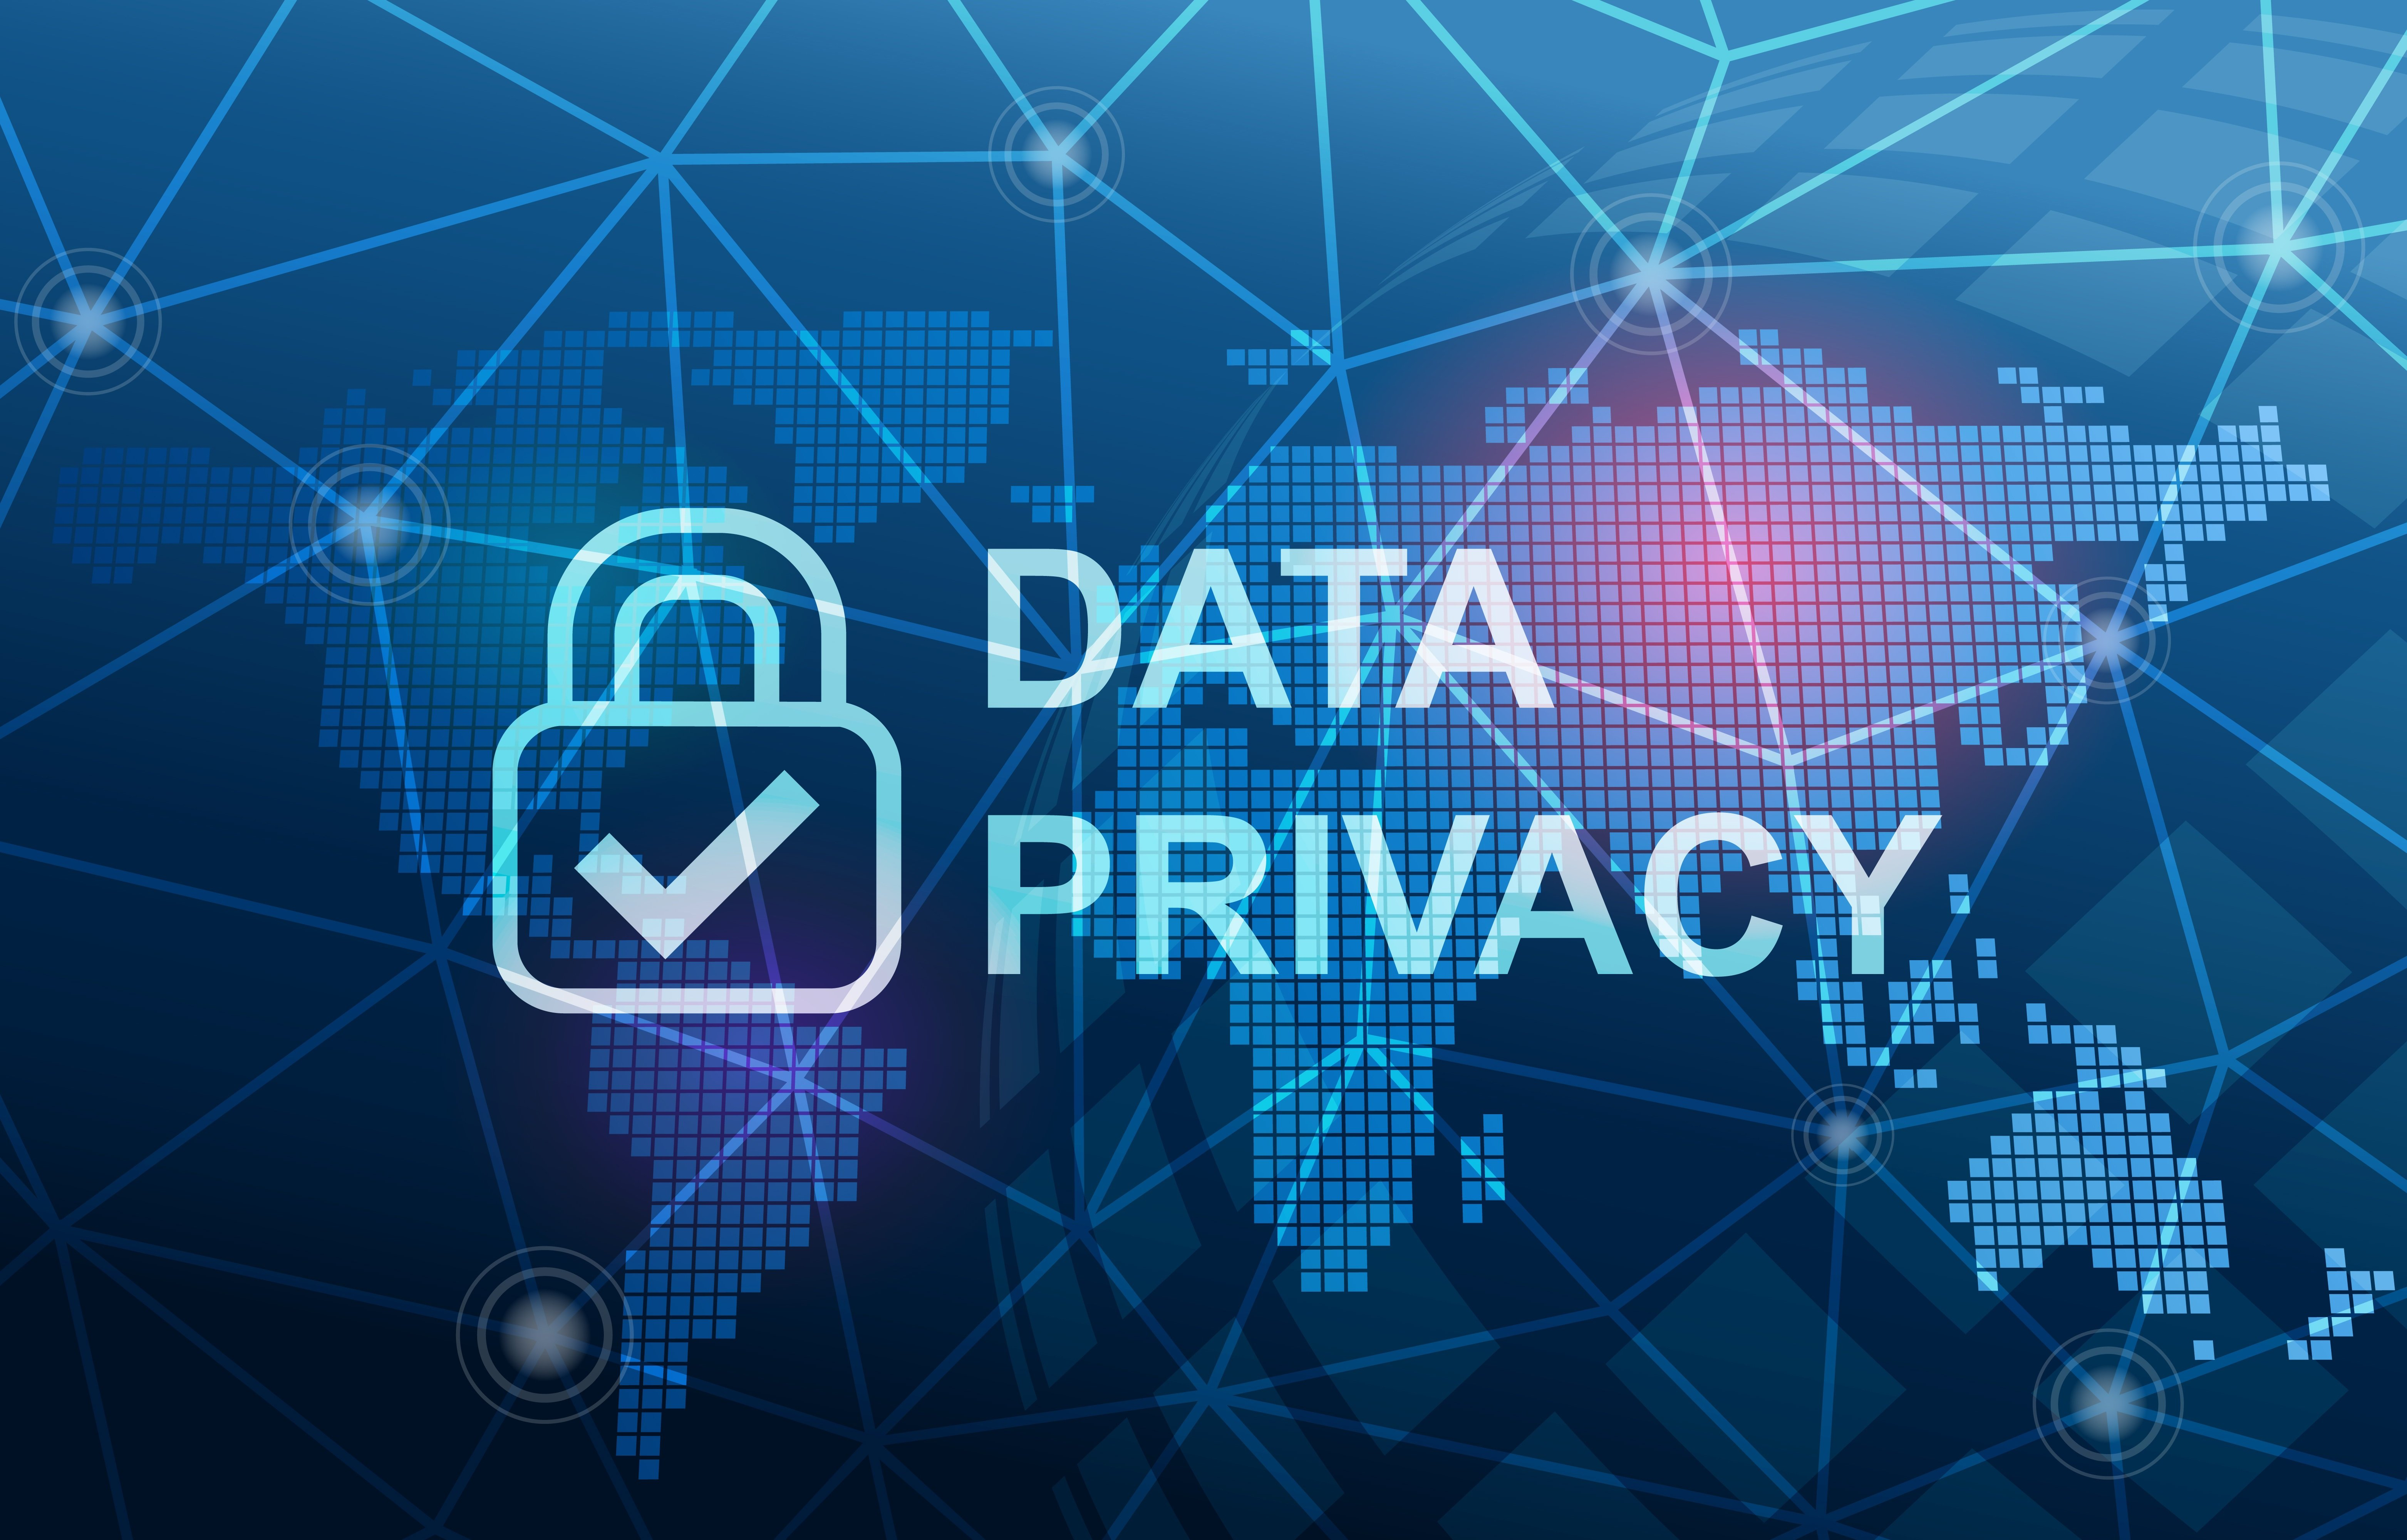 Data Privacy and Data Protection